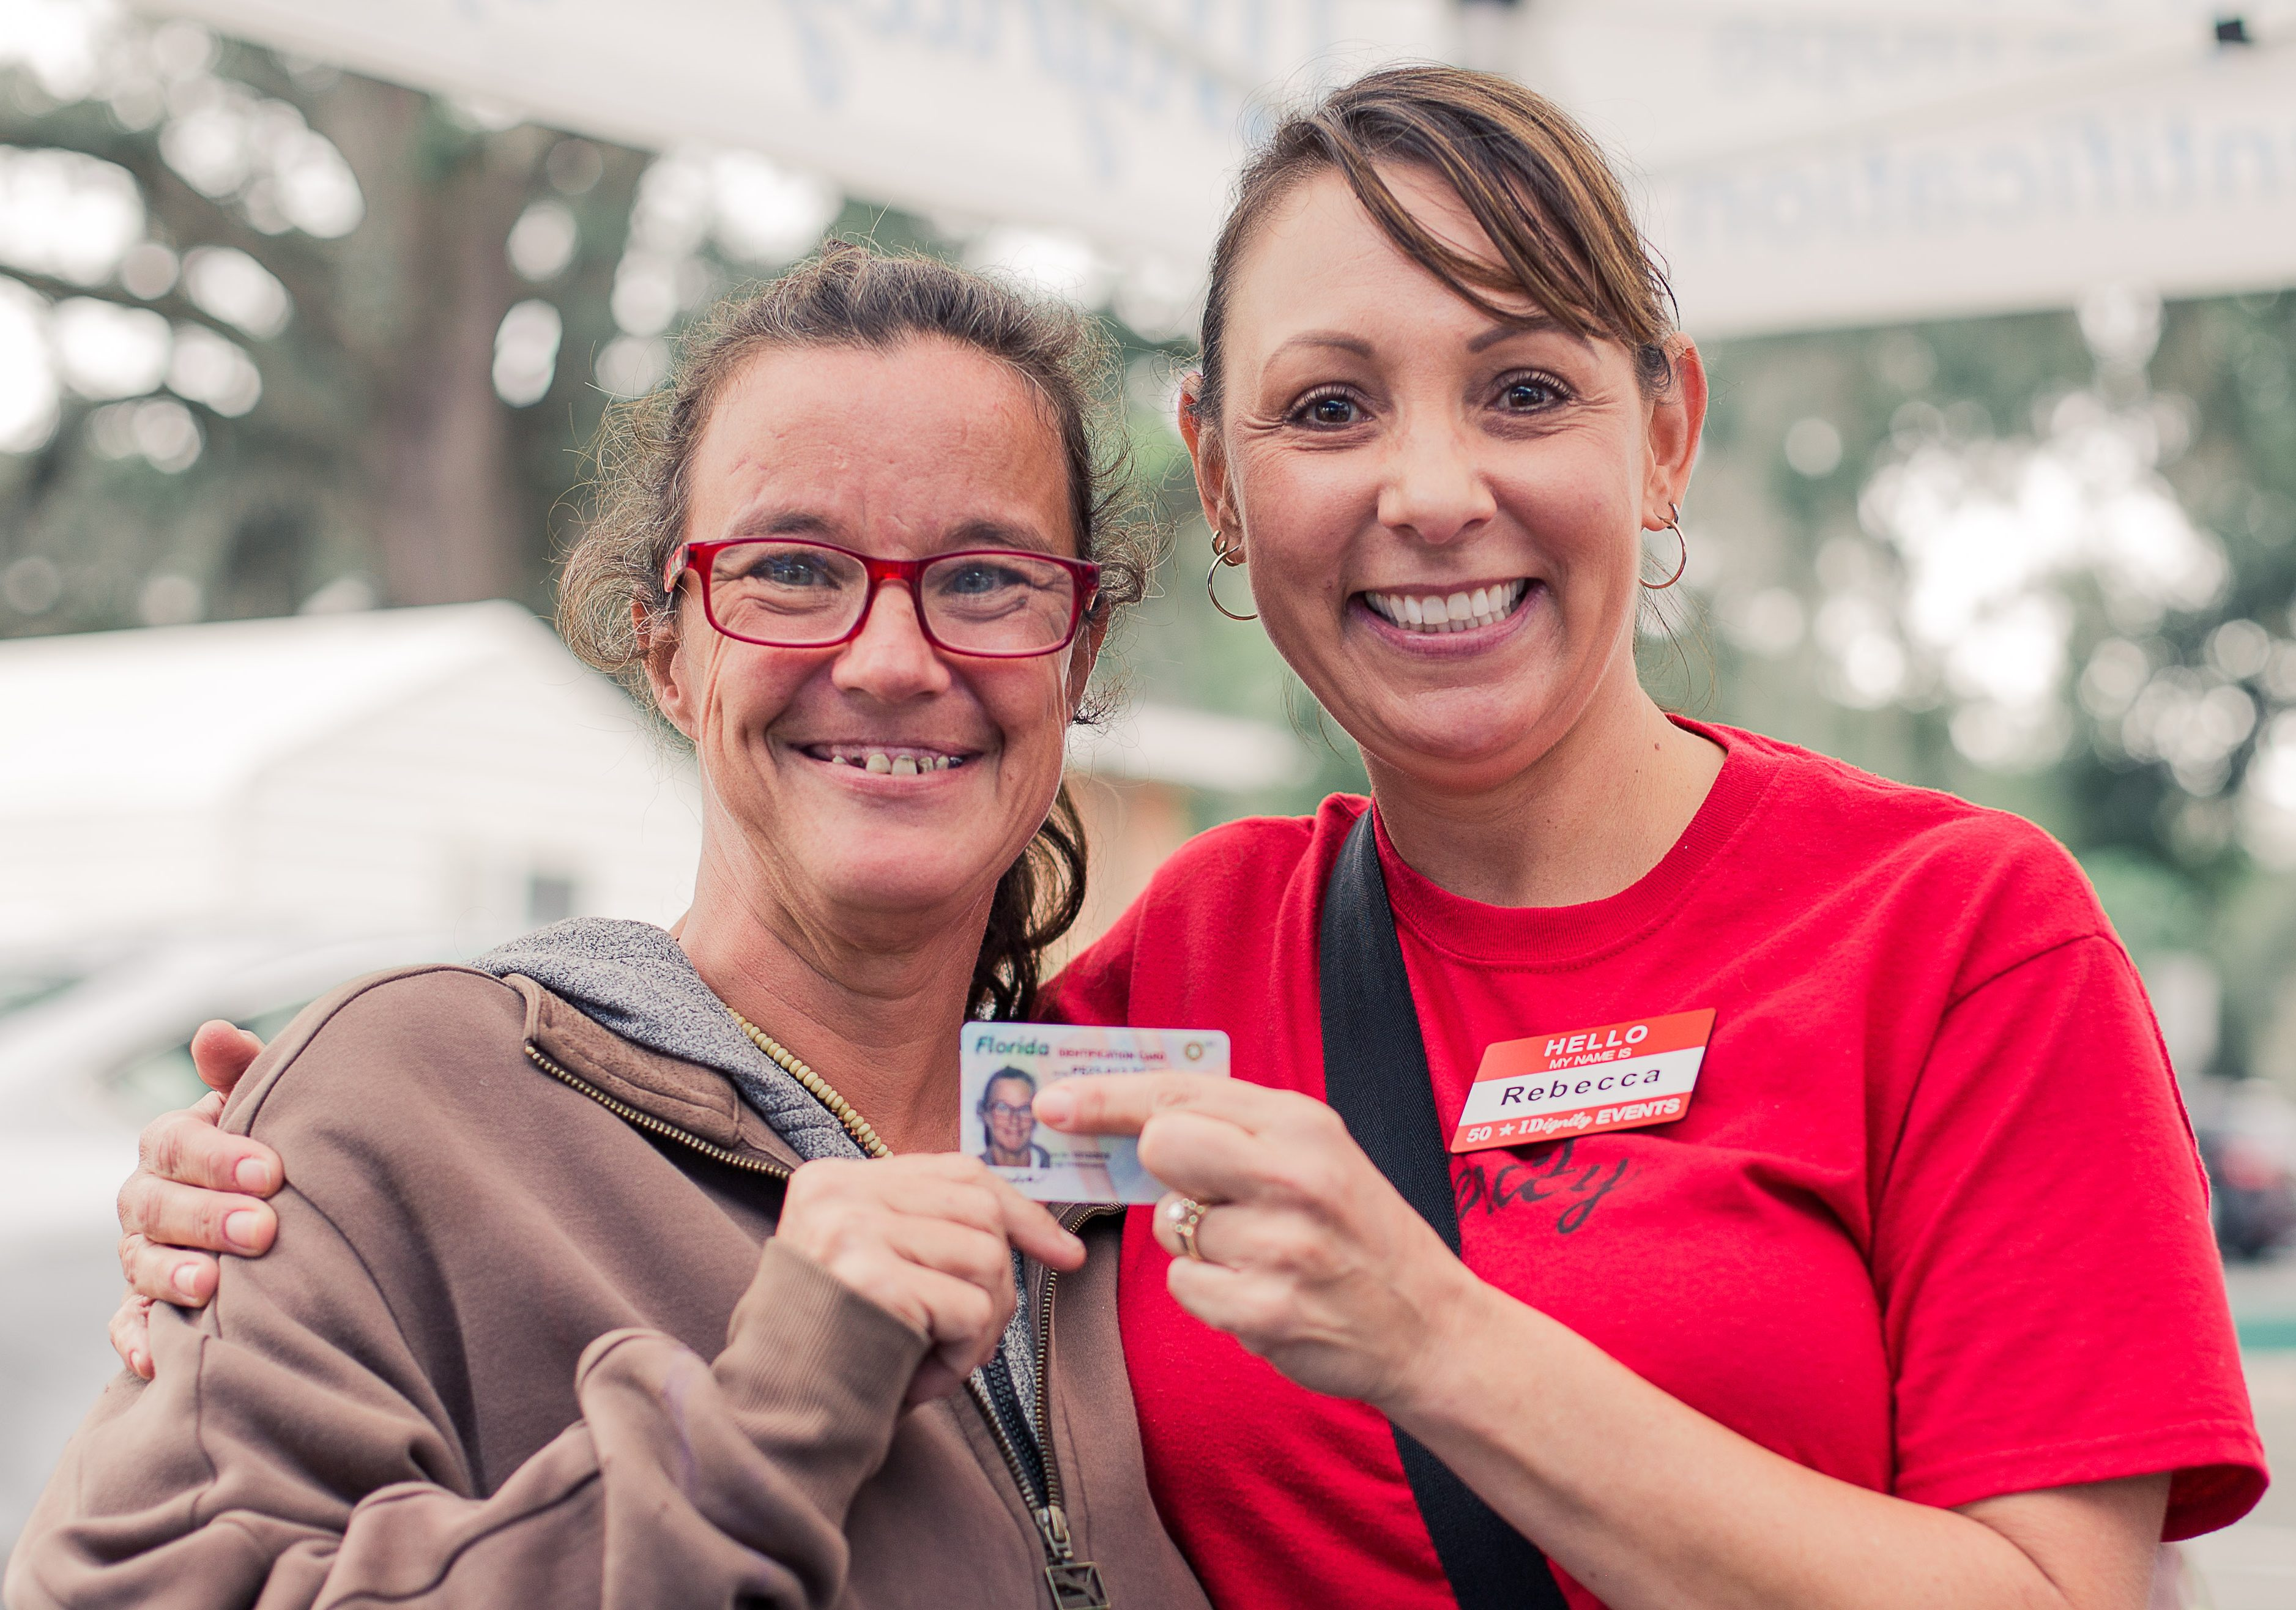 A happy client celebrates her new ID with an IDignity volunteer